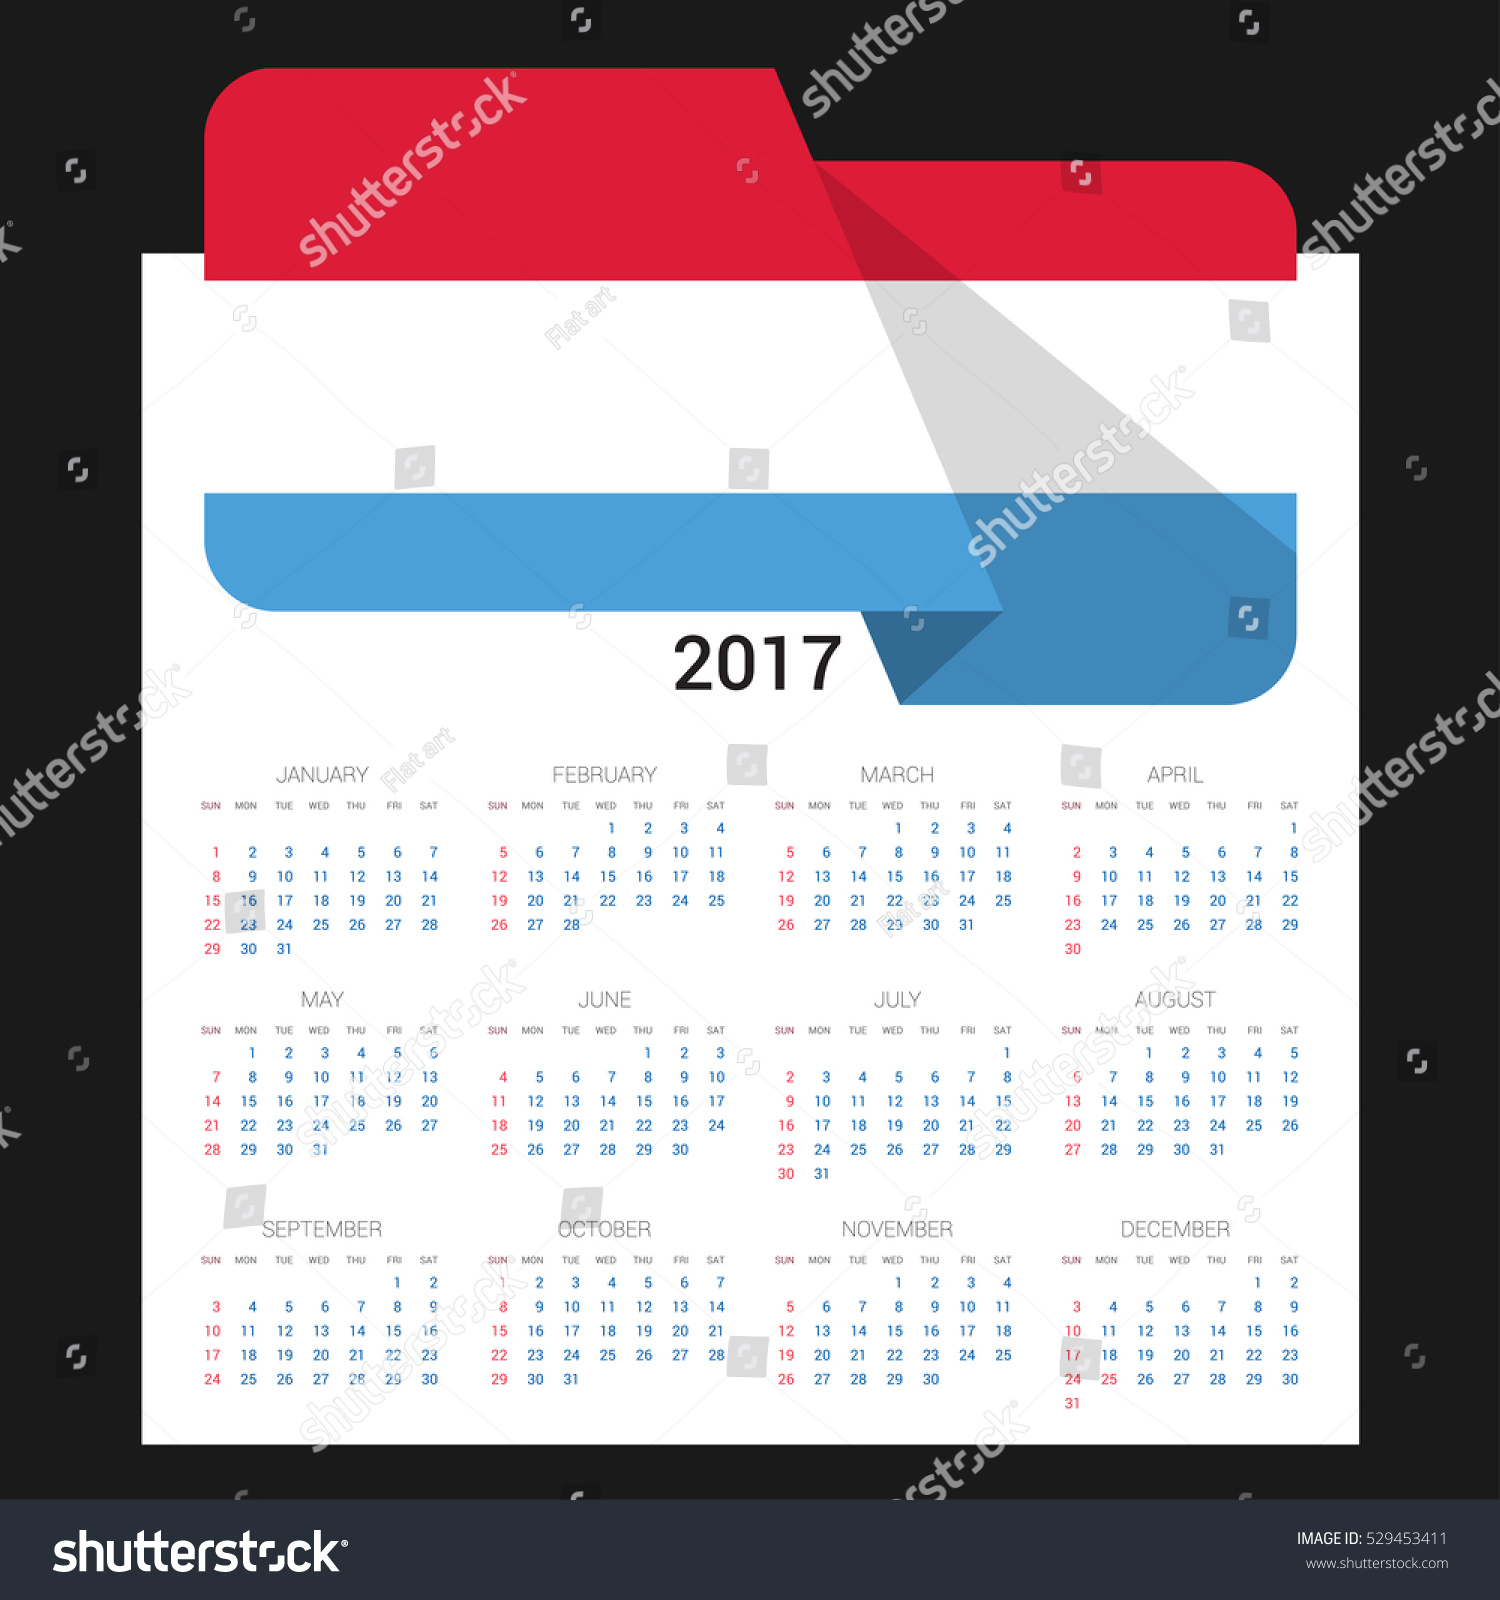 Calendar grid 2017 luxembourg flag on stock vector 529453411 calendar grid for 2017 with luxembourg flag on 2017 national flag on a black background biocorpaavc Image collections